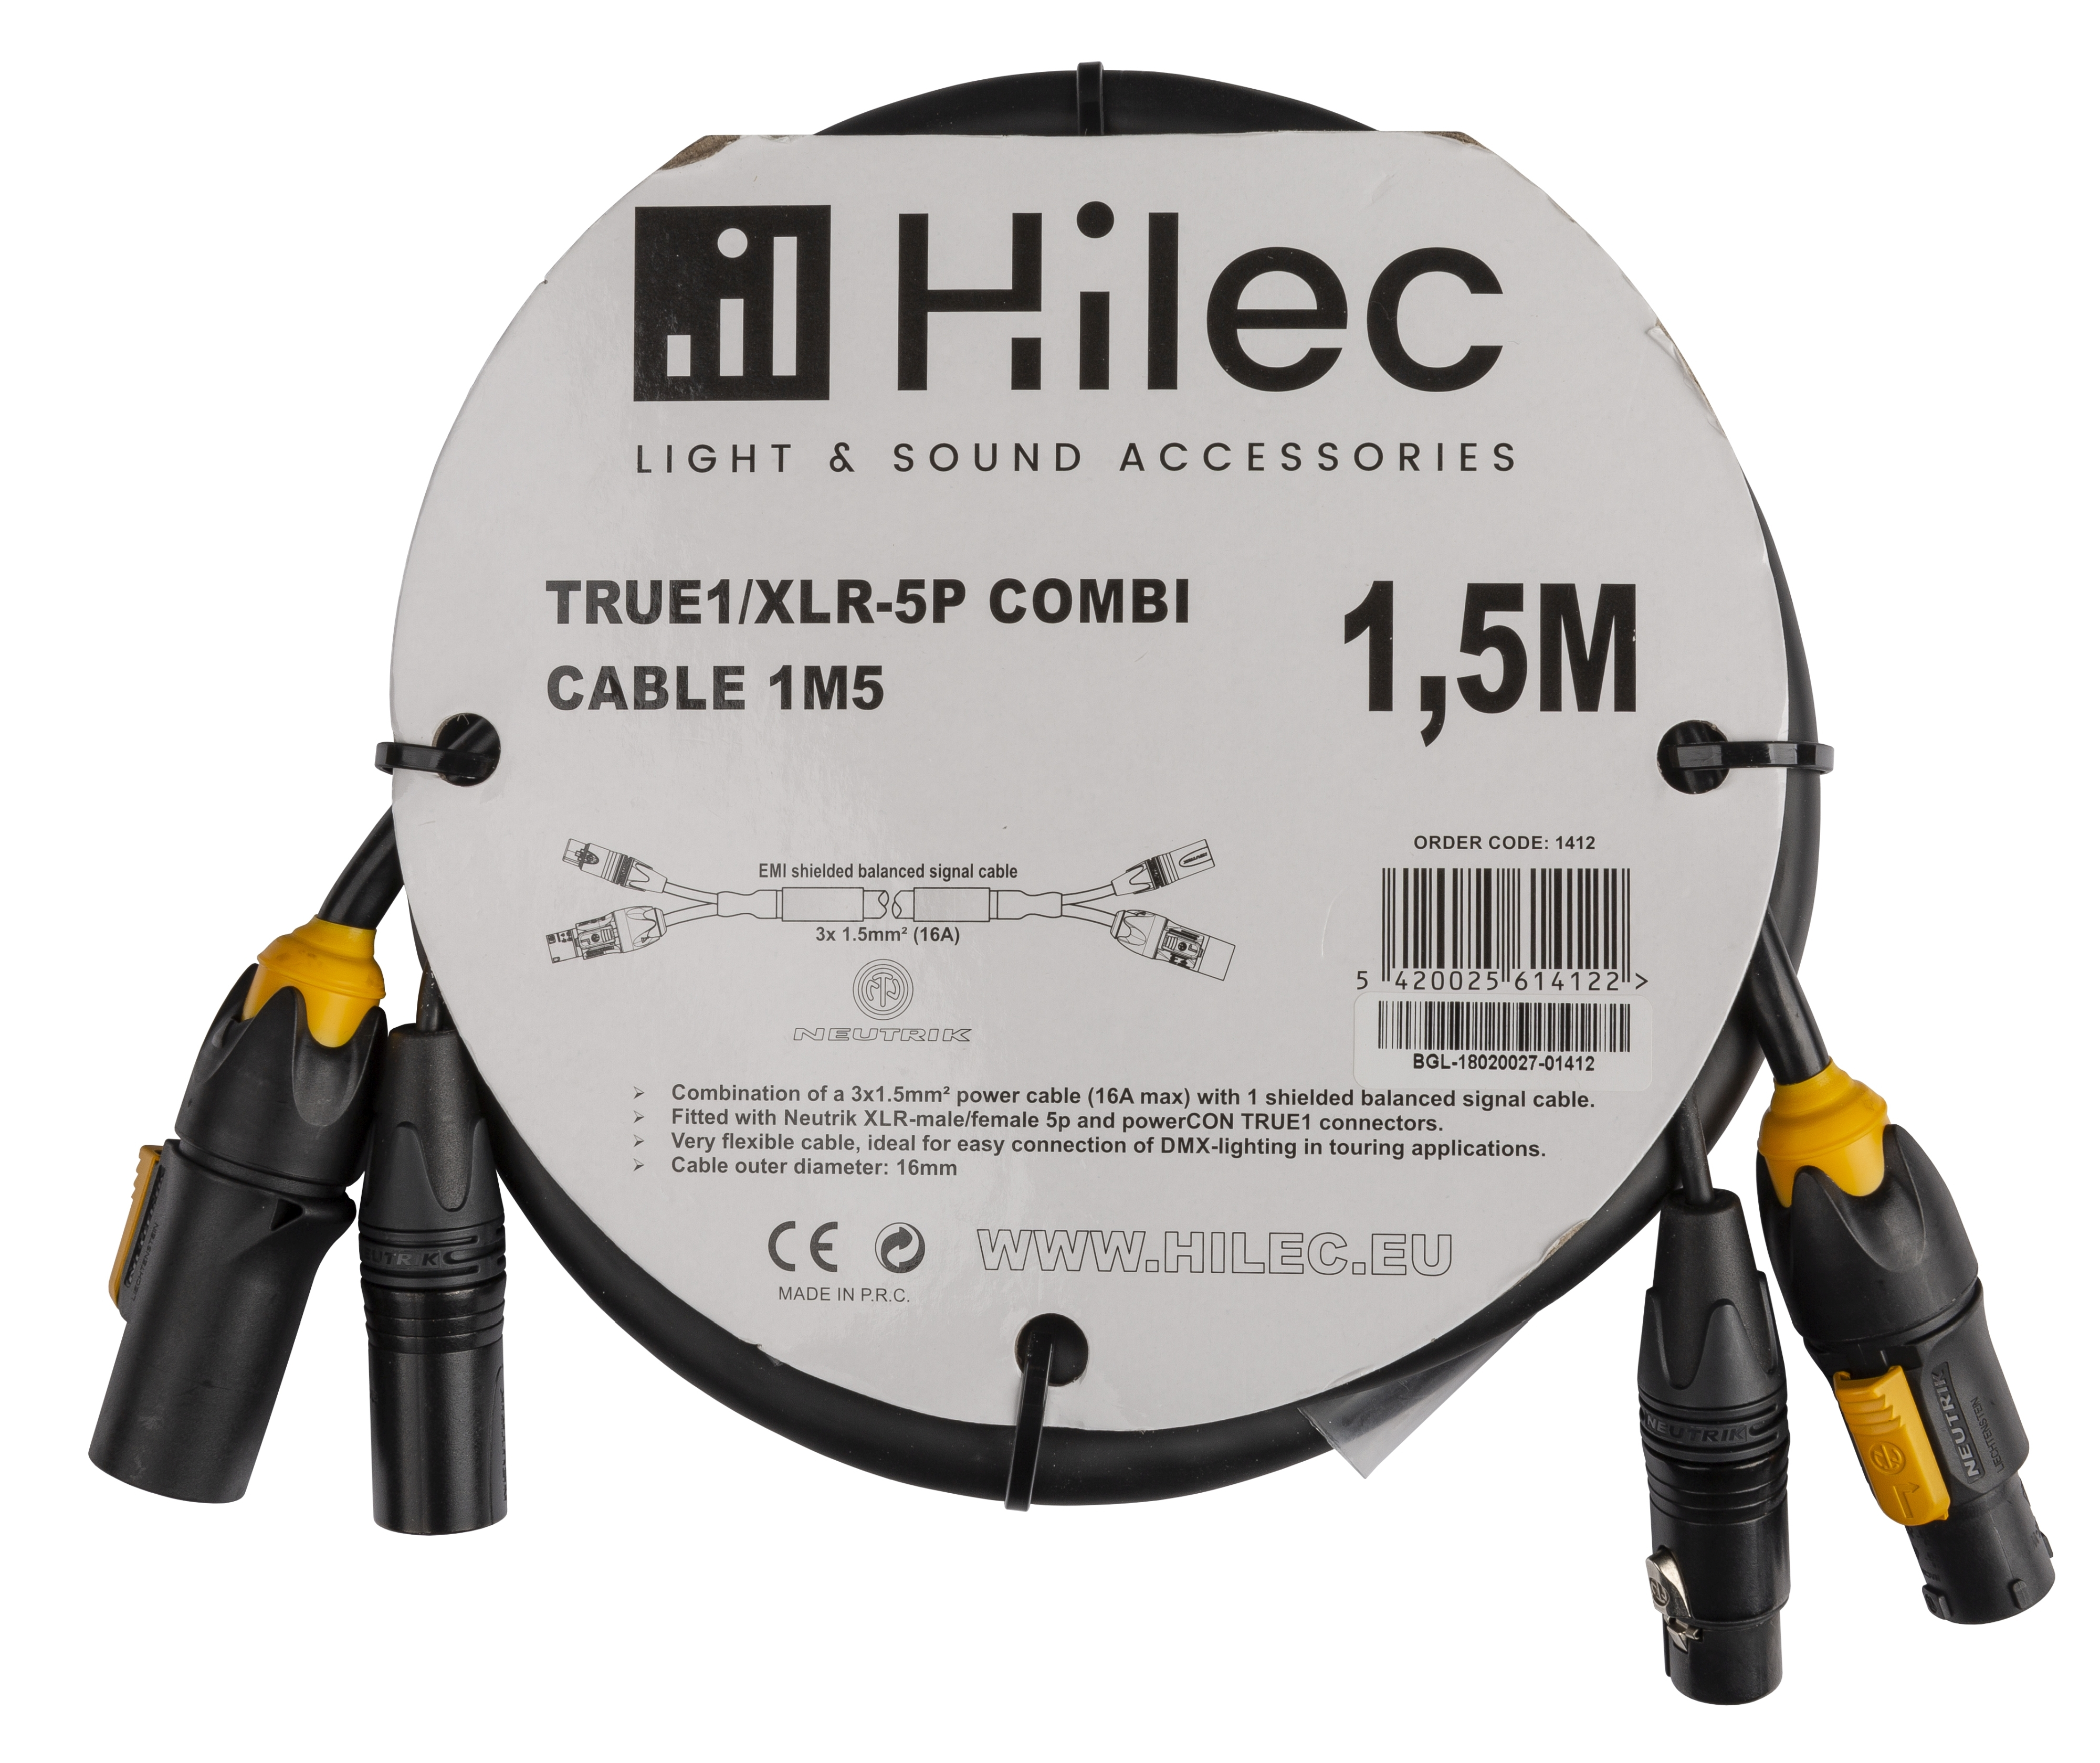 Briteq True1 Xlr 5p Combi Cable 15m Dmx Power Electrical Wiring Made Easy